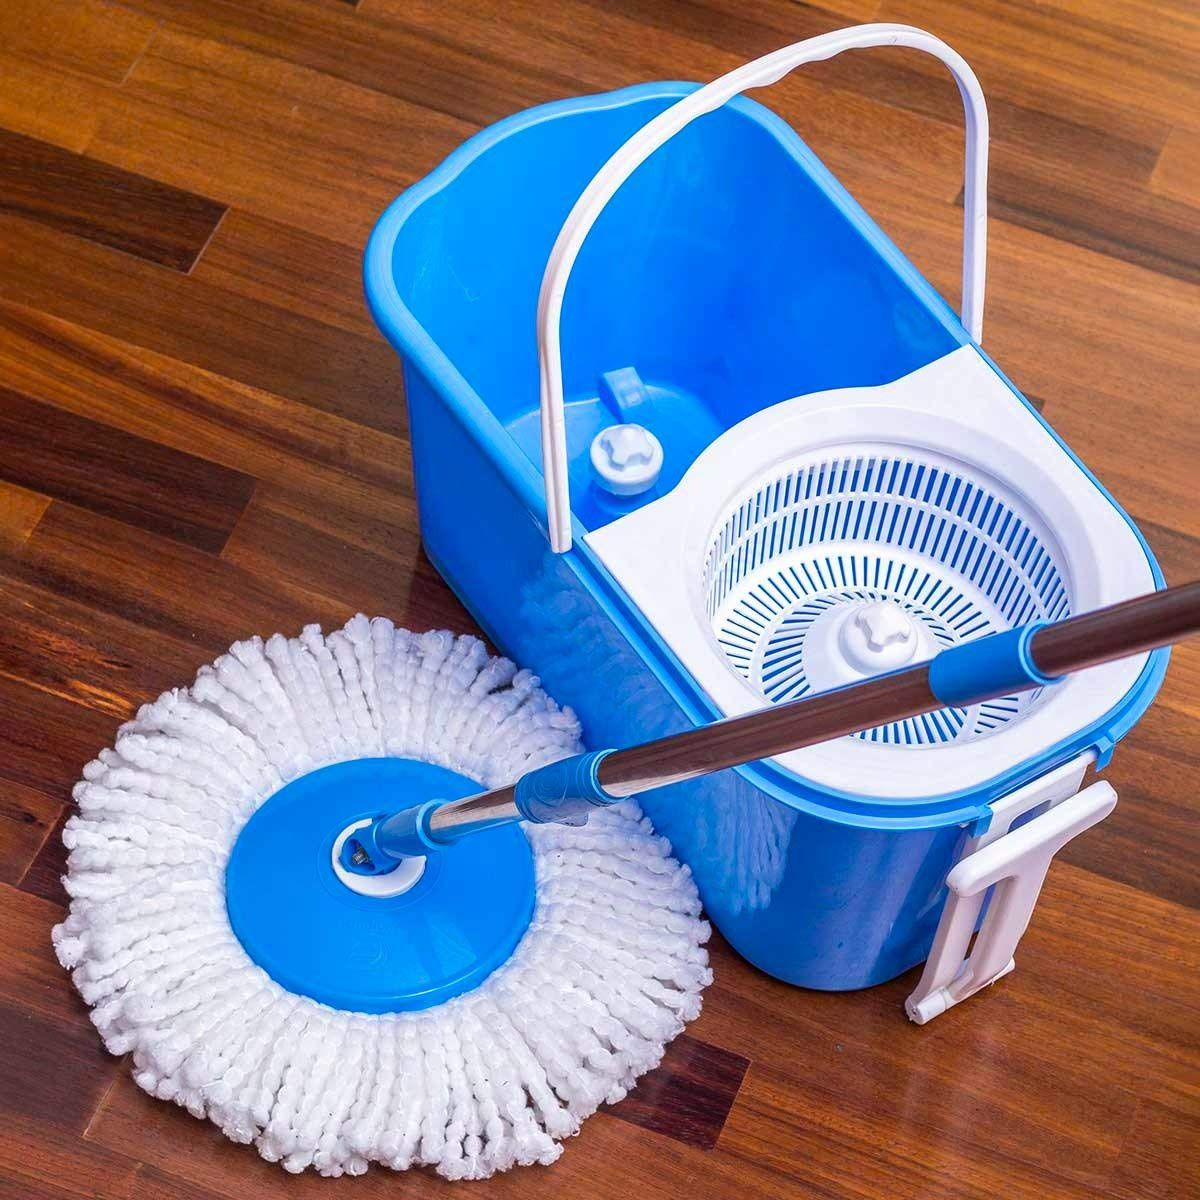 Esquire Classic Spin Mop Set with Pull Handle, Wheels and 2 Microfiber Refills